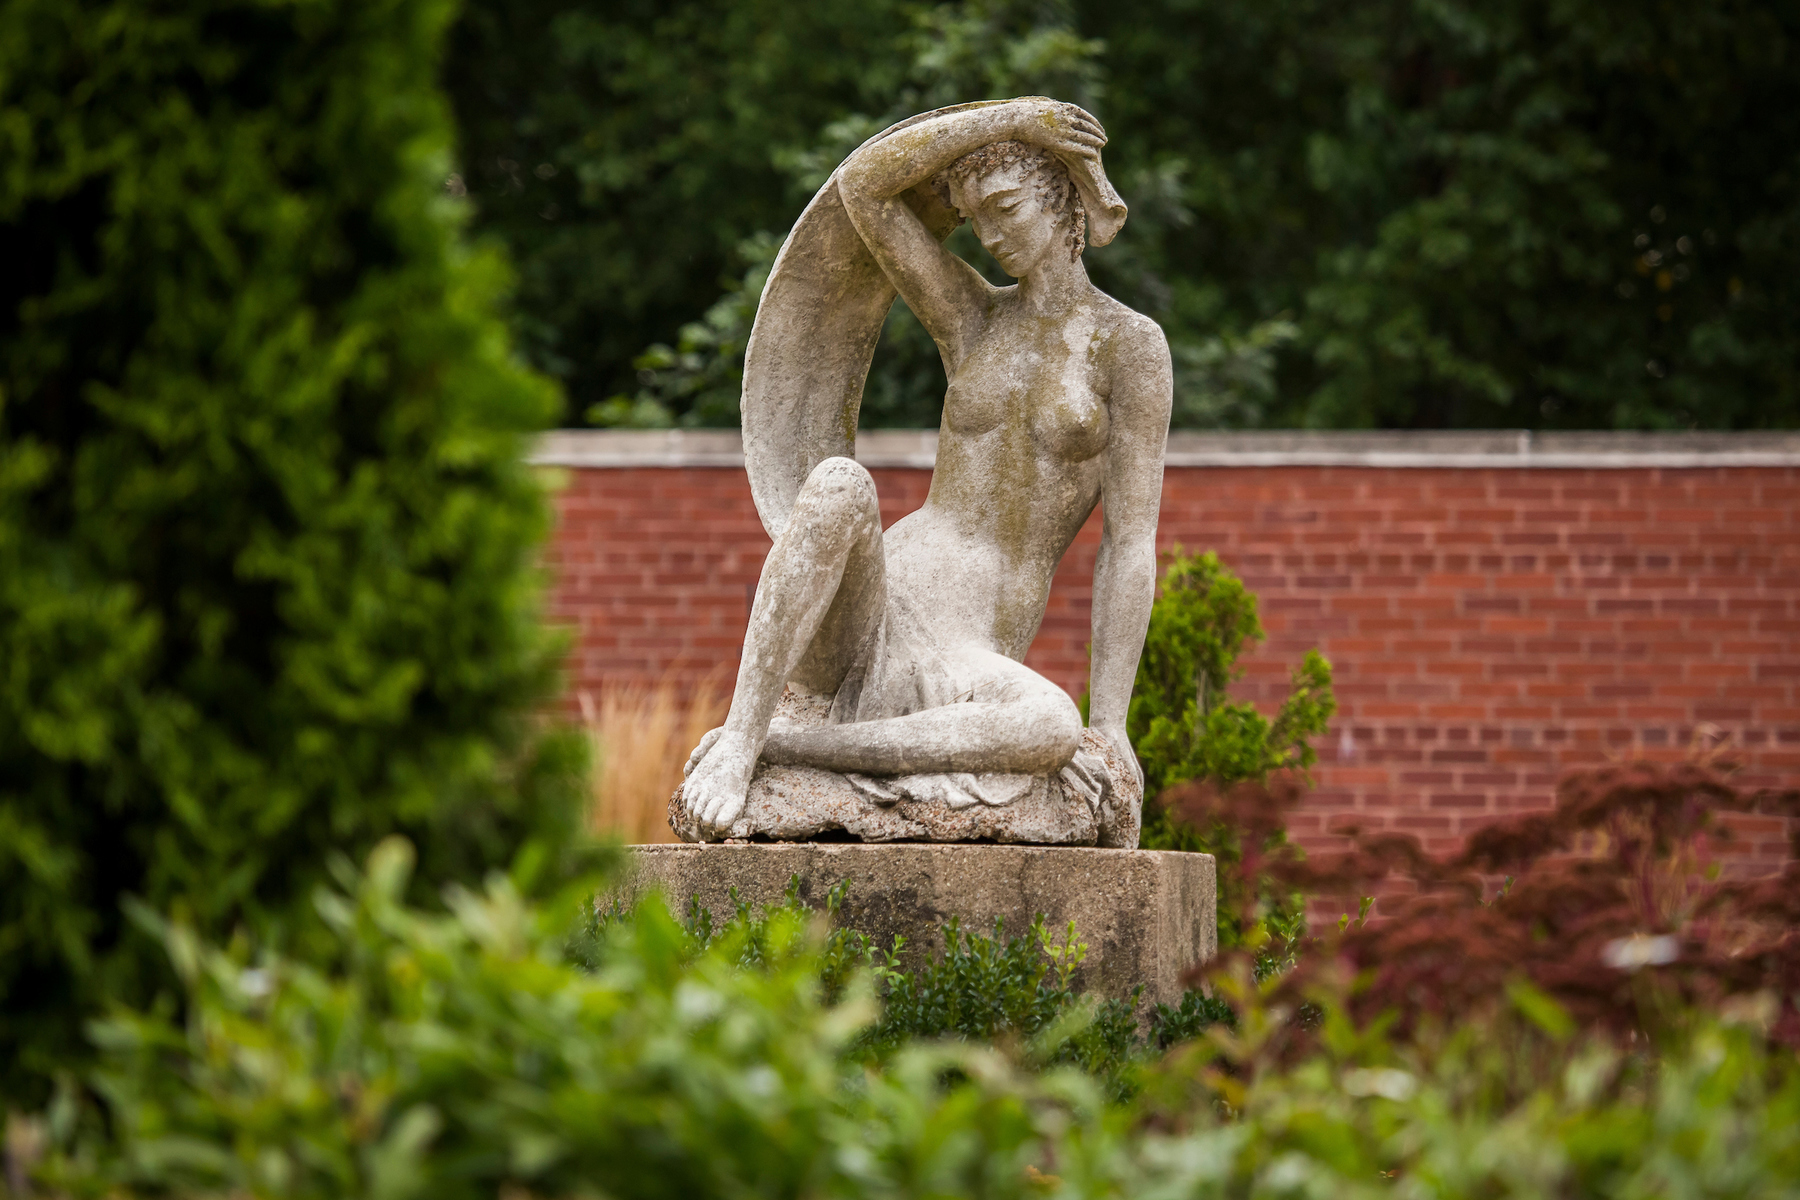 A stone sculpture of a girl holding a scarf